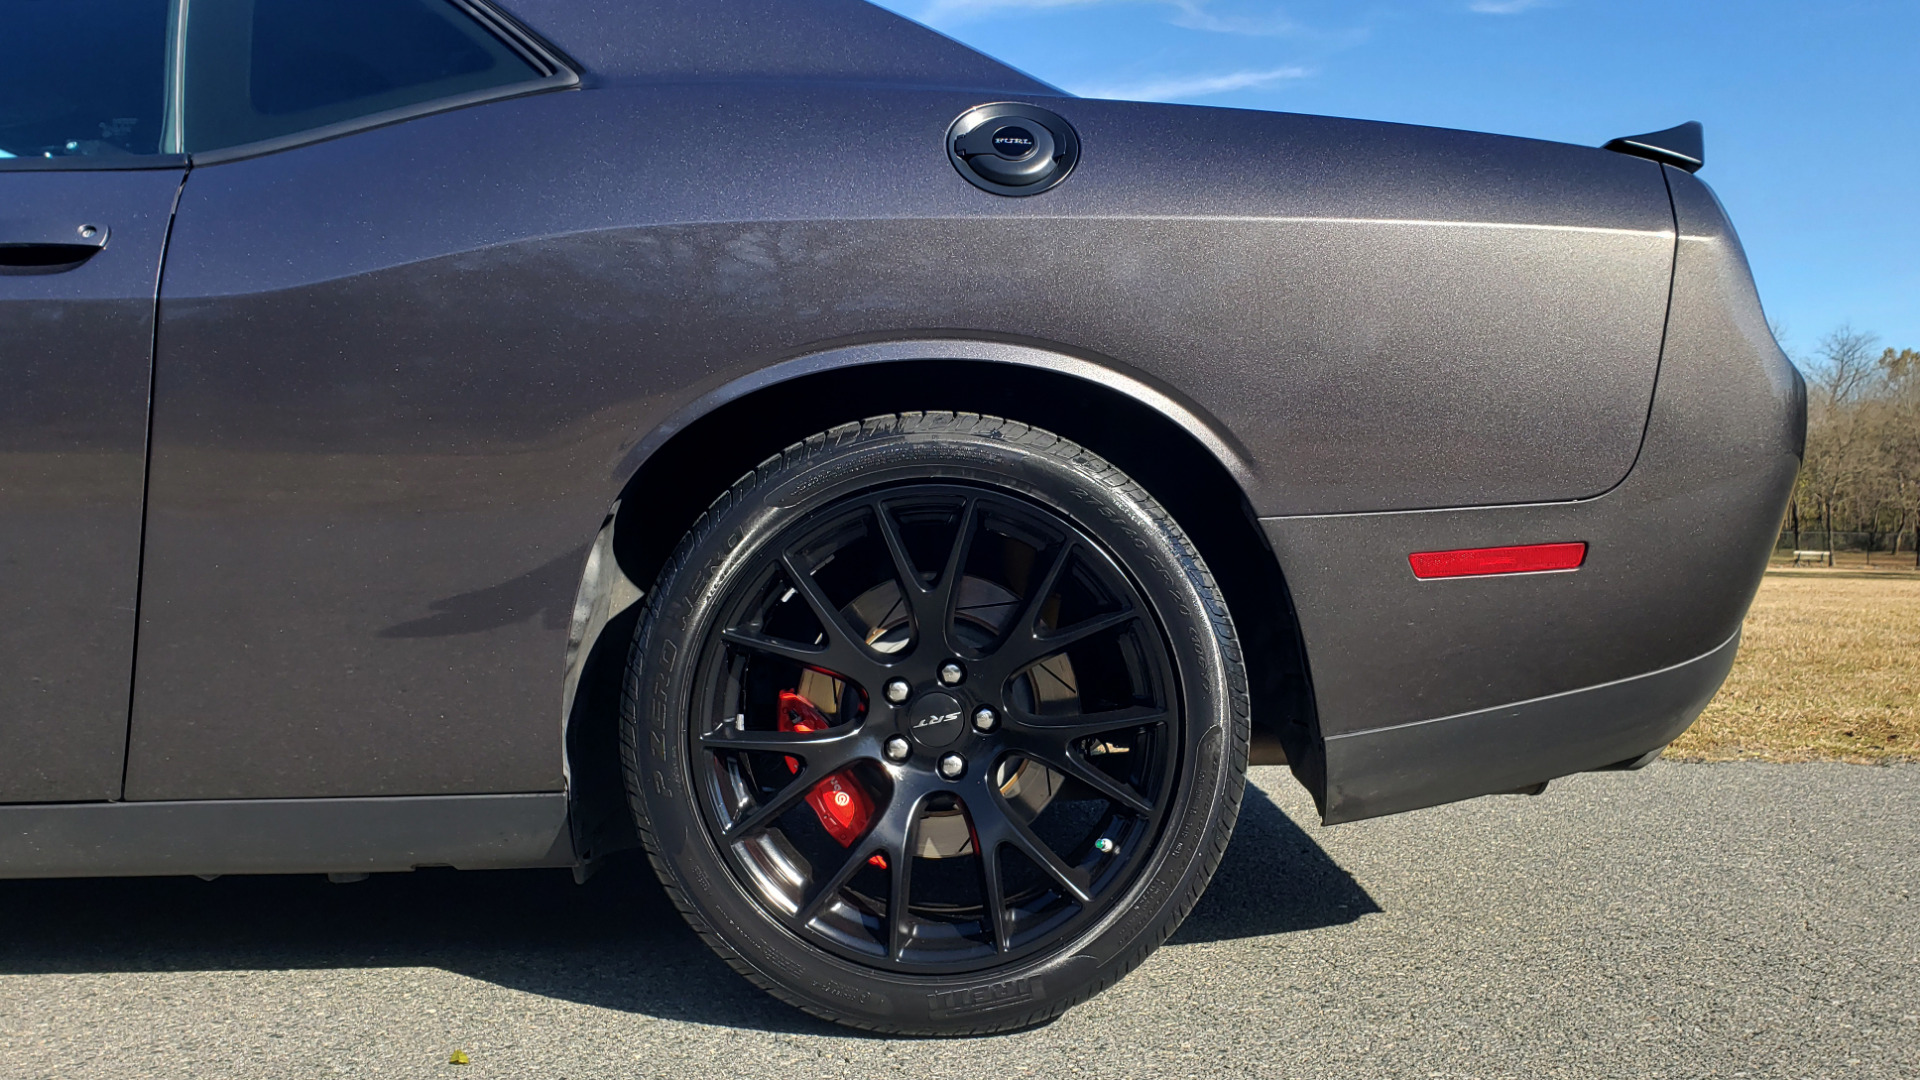 Used 2016 Dodge CHALLENGER SRT HELLCAT COUPE / 6-SPD MAN / NAV / SRT APPS / REARVIEW for sale Sold at Formula Imports in Charlotte NC 28227 6